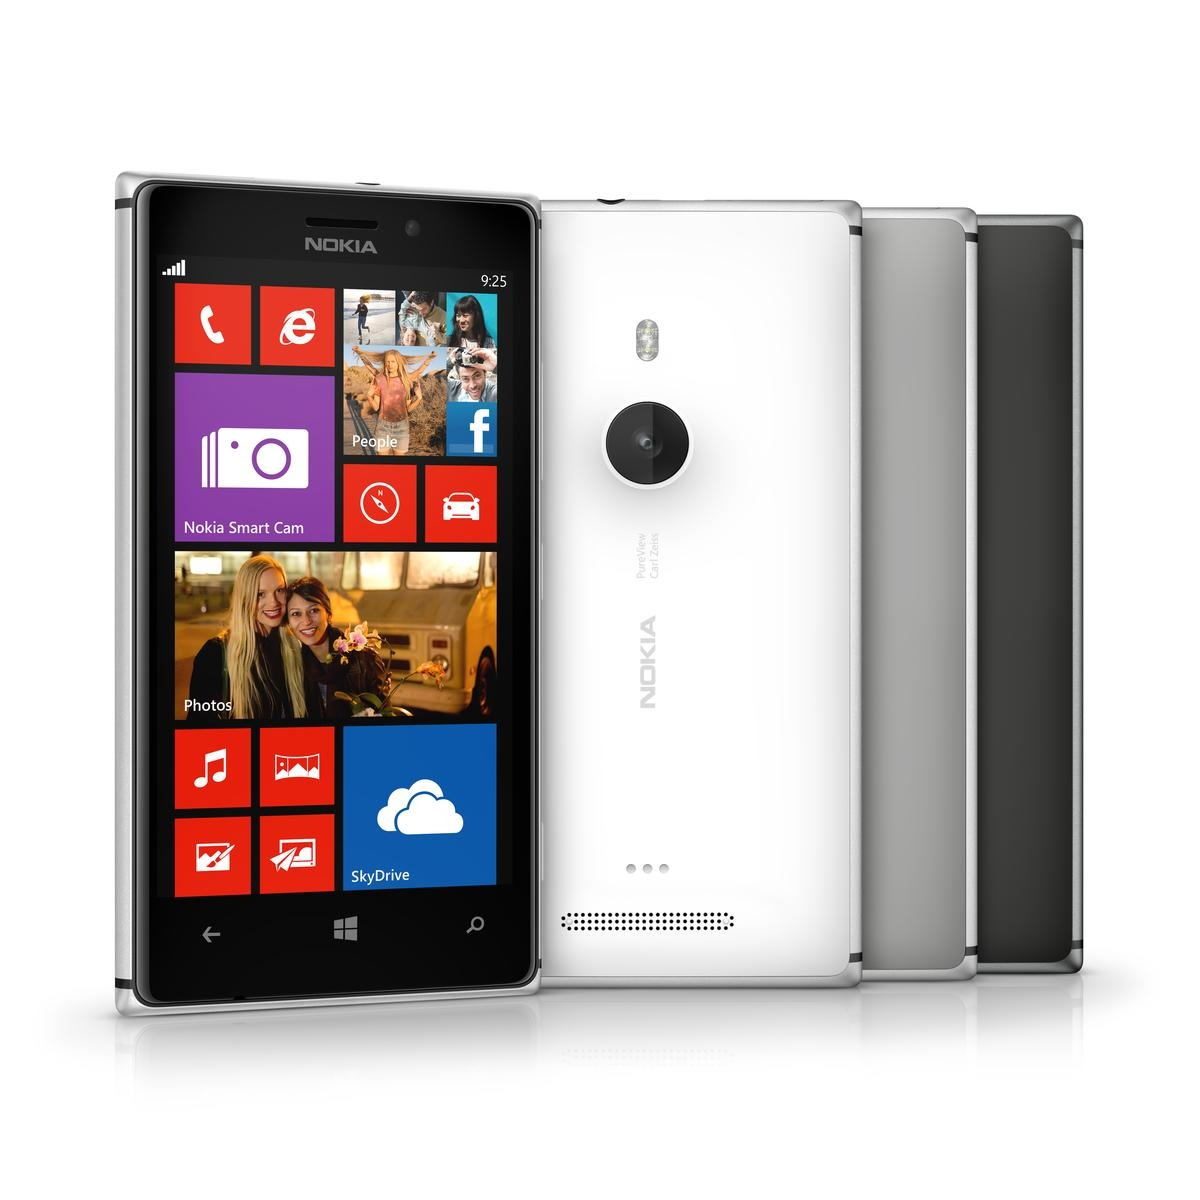 Galaxy microsoft lumia phones price list in sri lanka screen quality, touch